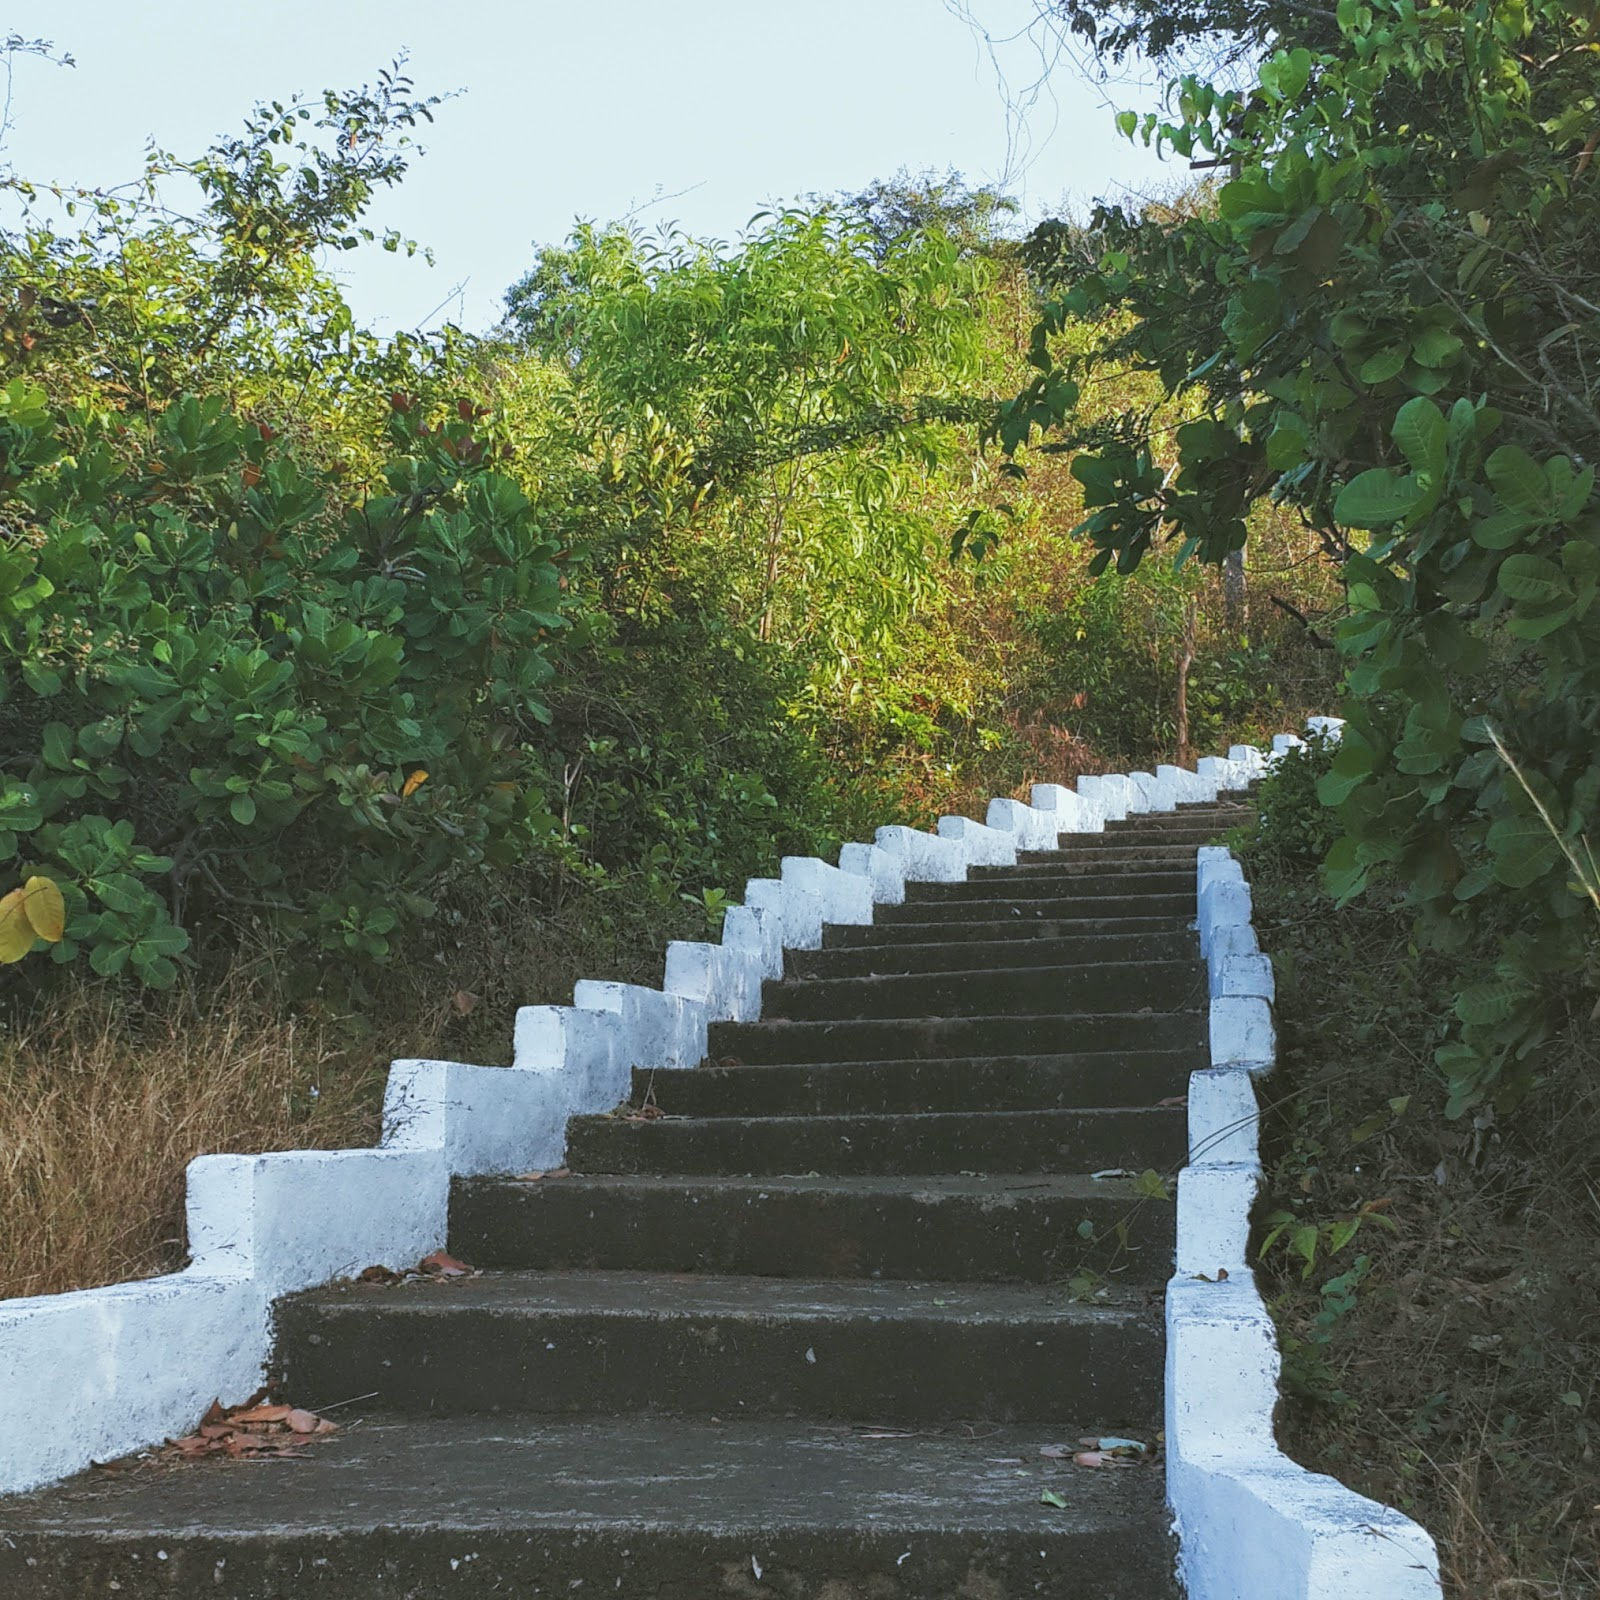 Concrete staircase in the midst of a green forest that leads to a mountain top